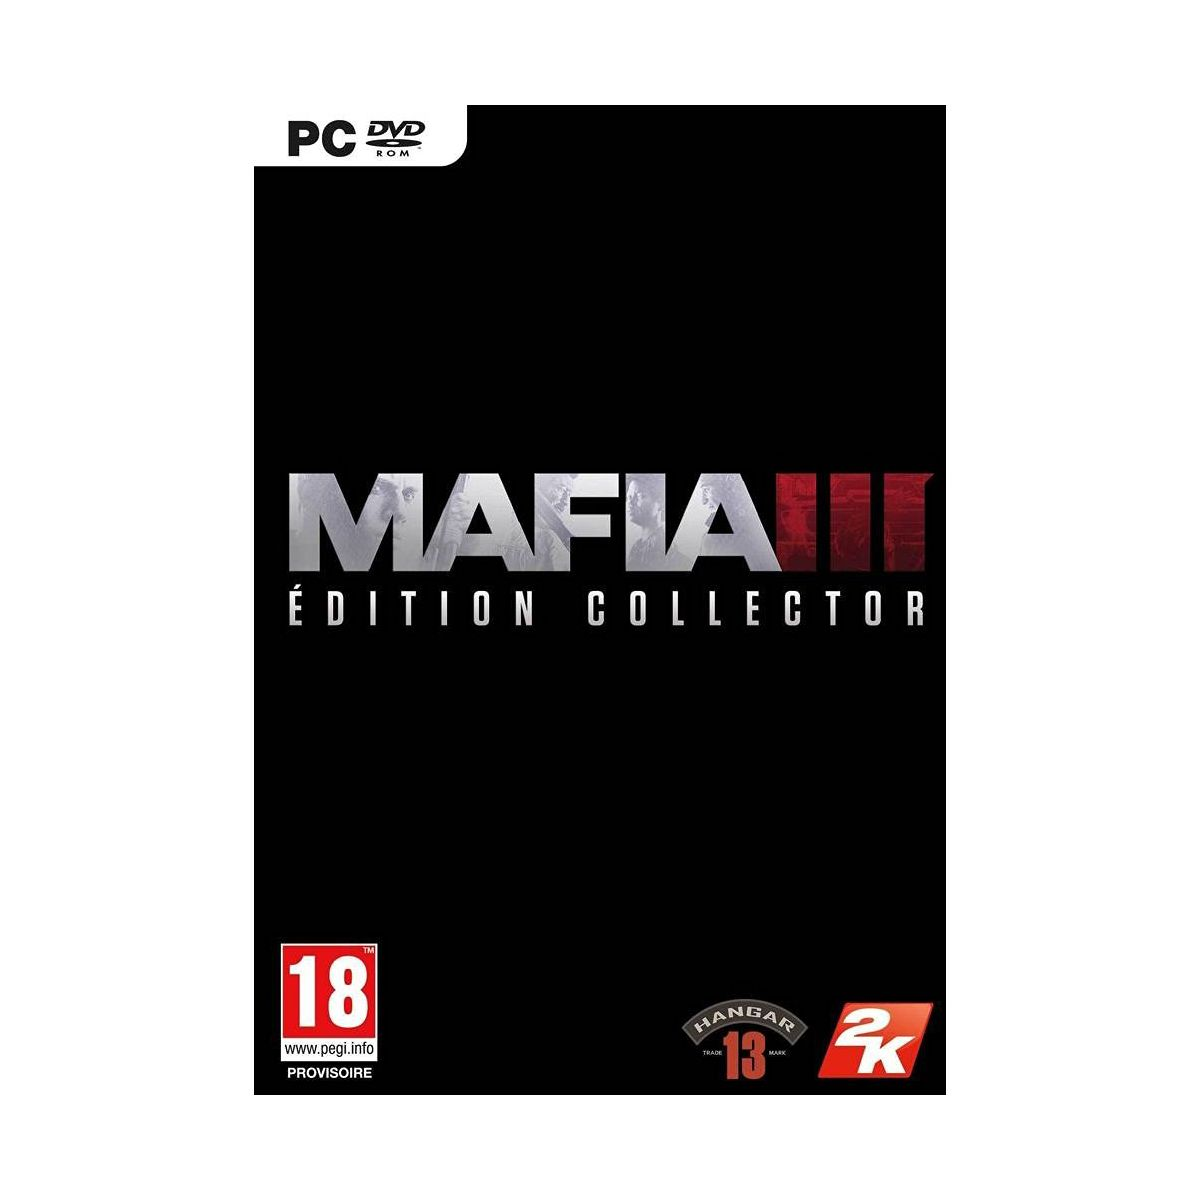 Jeu PC TAKE 2 Mafia 3 Collector